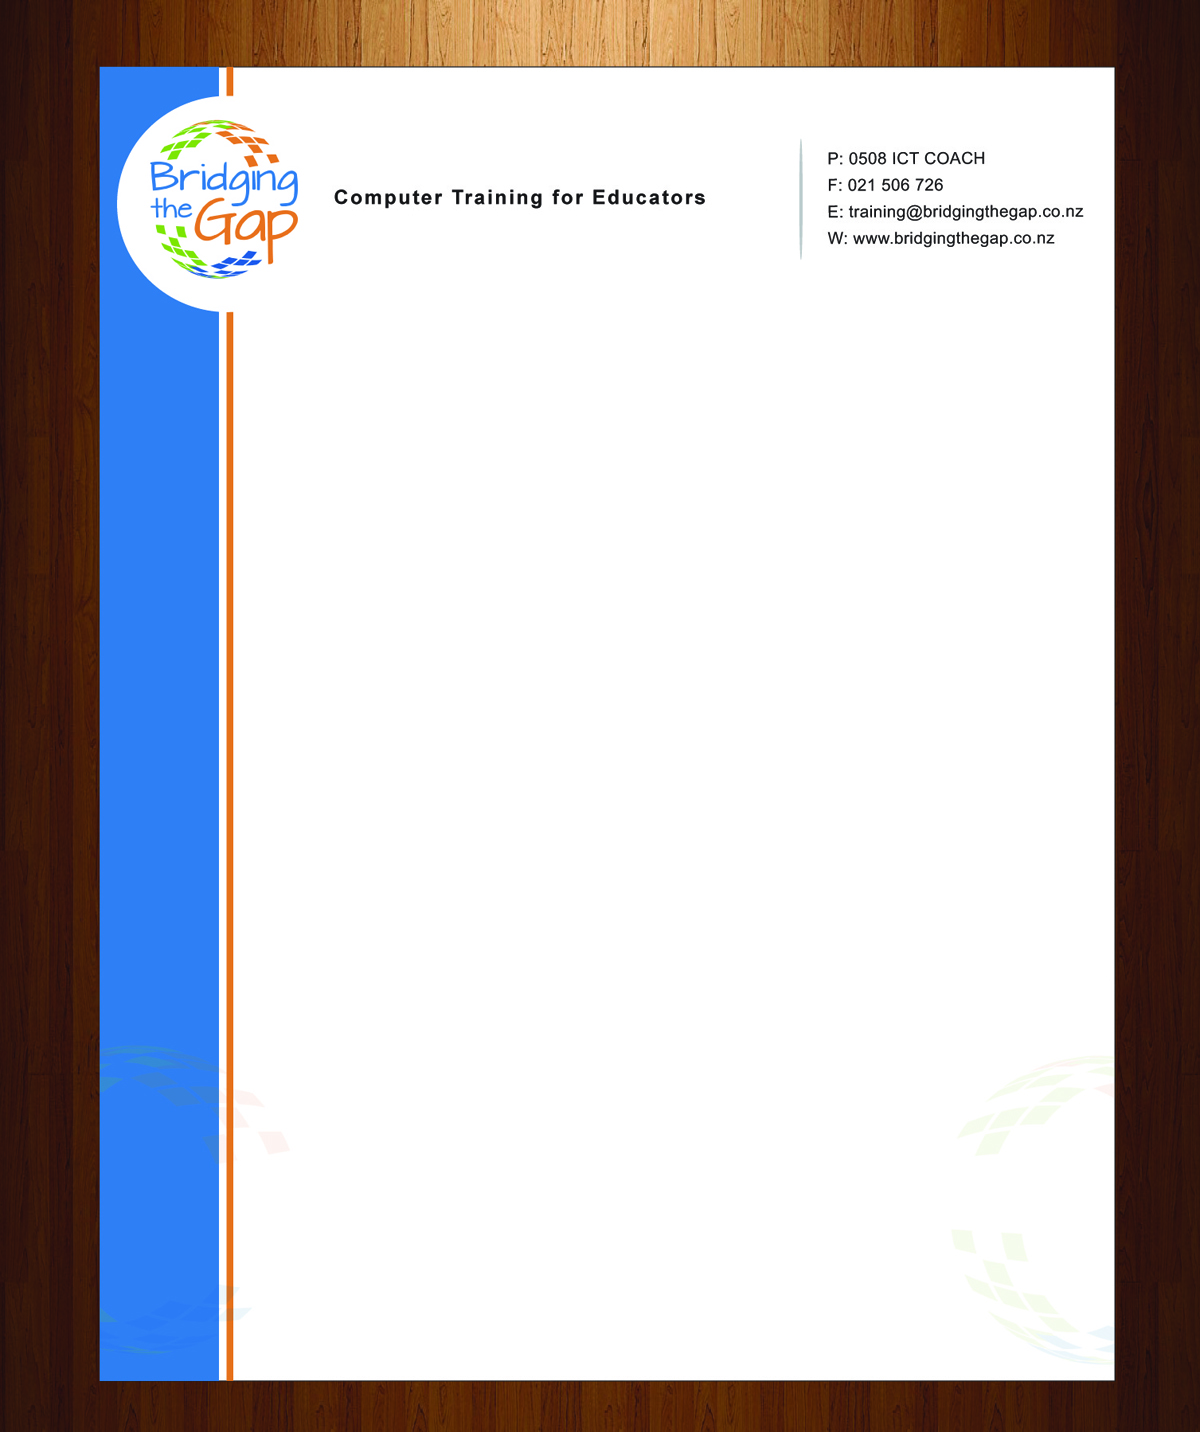 How To Design A Personal Letterhead Logo